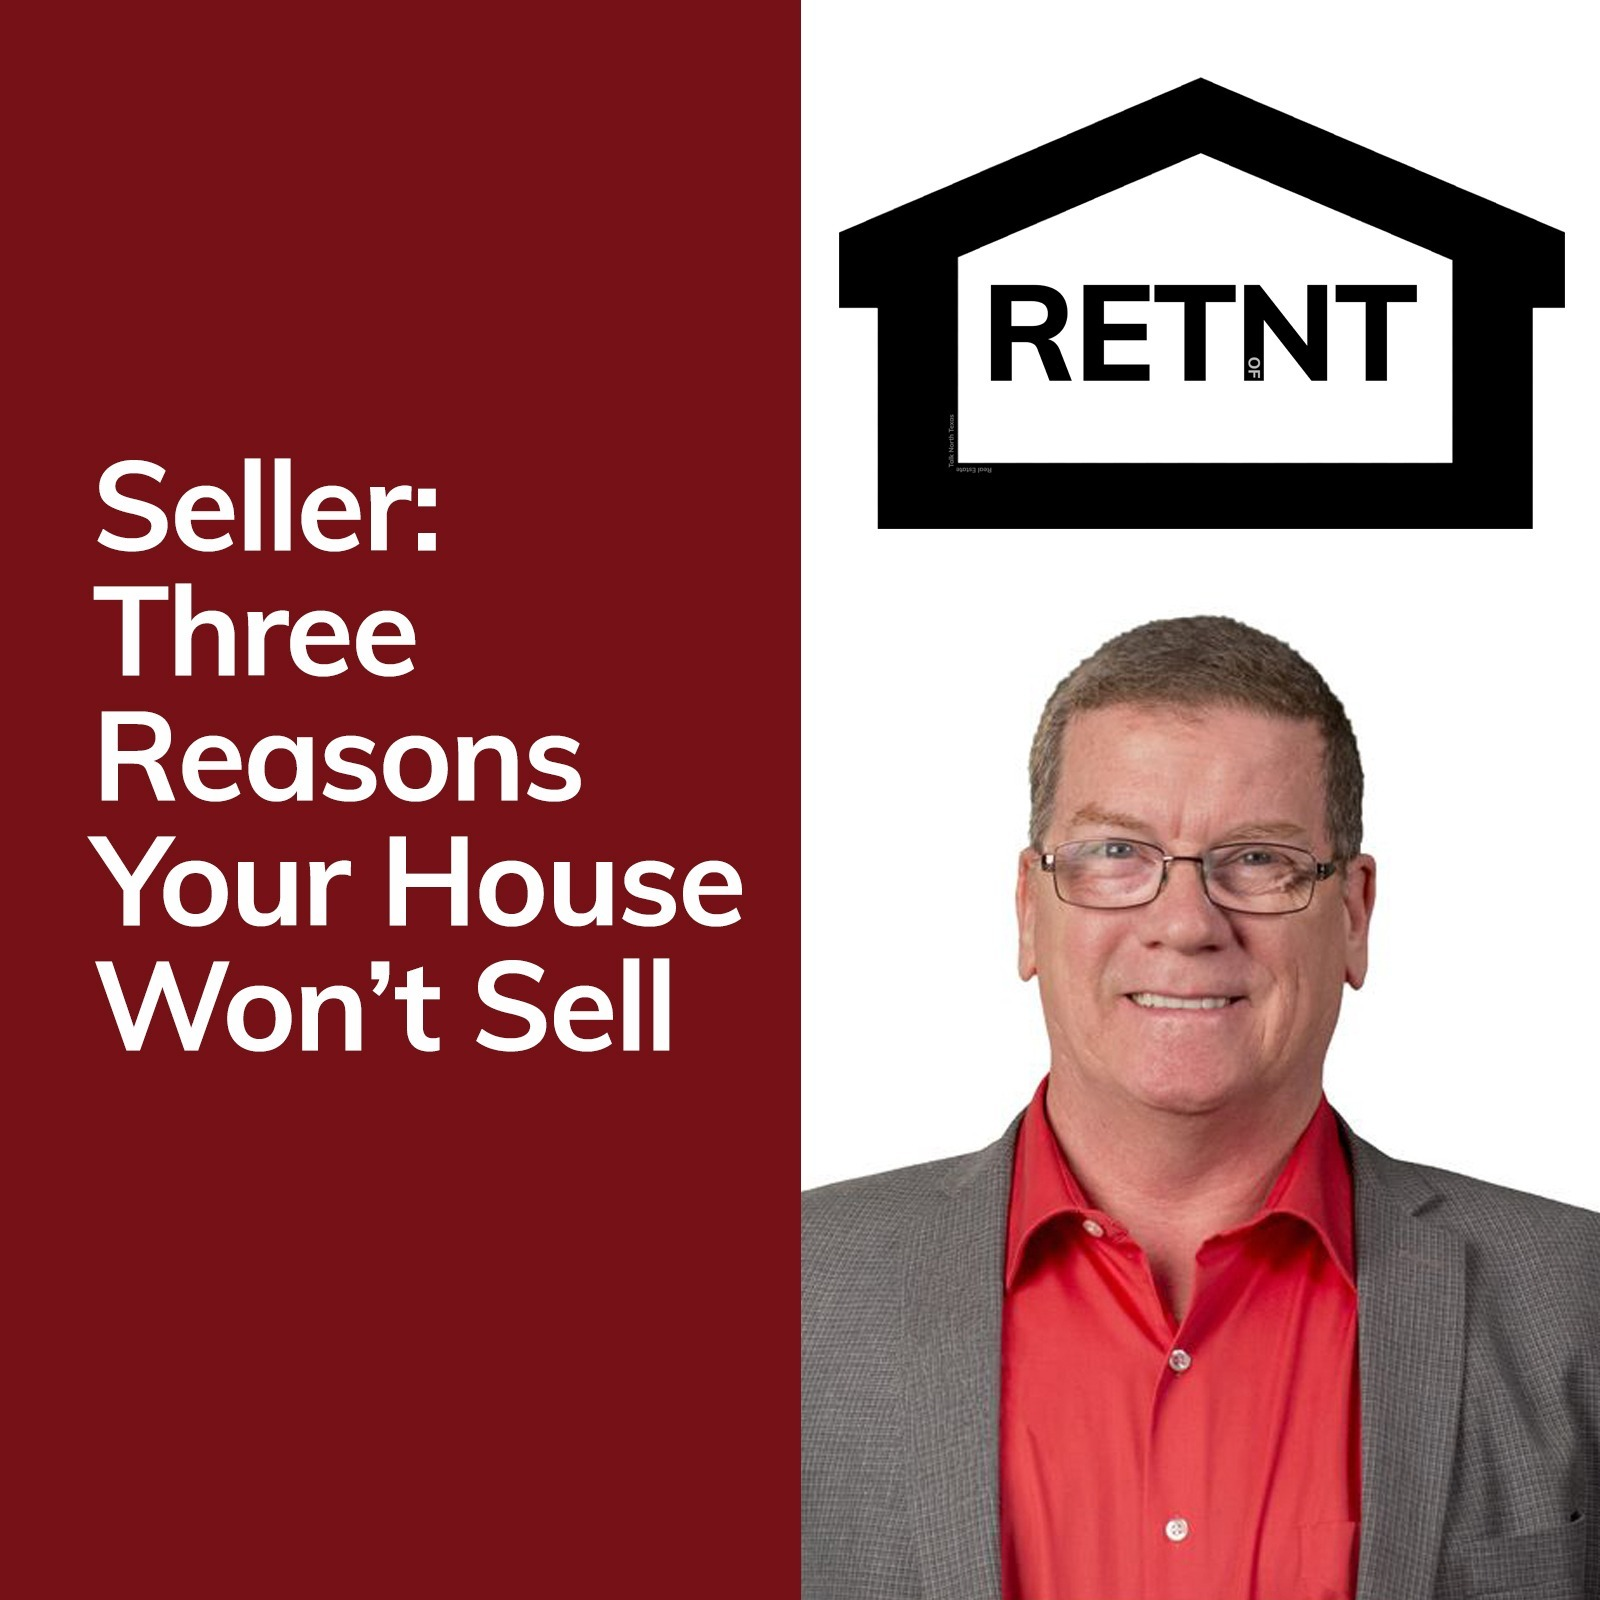 Three Reasons Your House Won't Sell